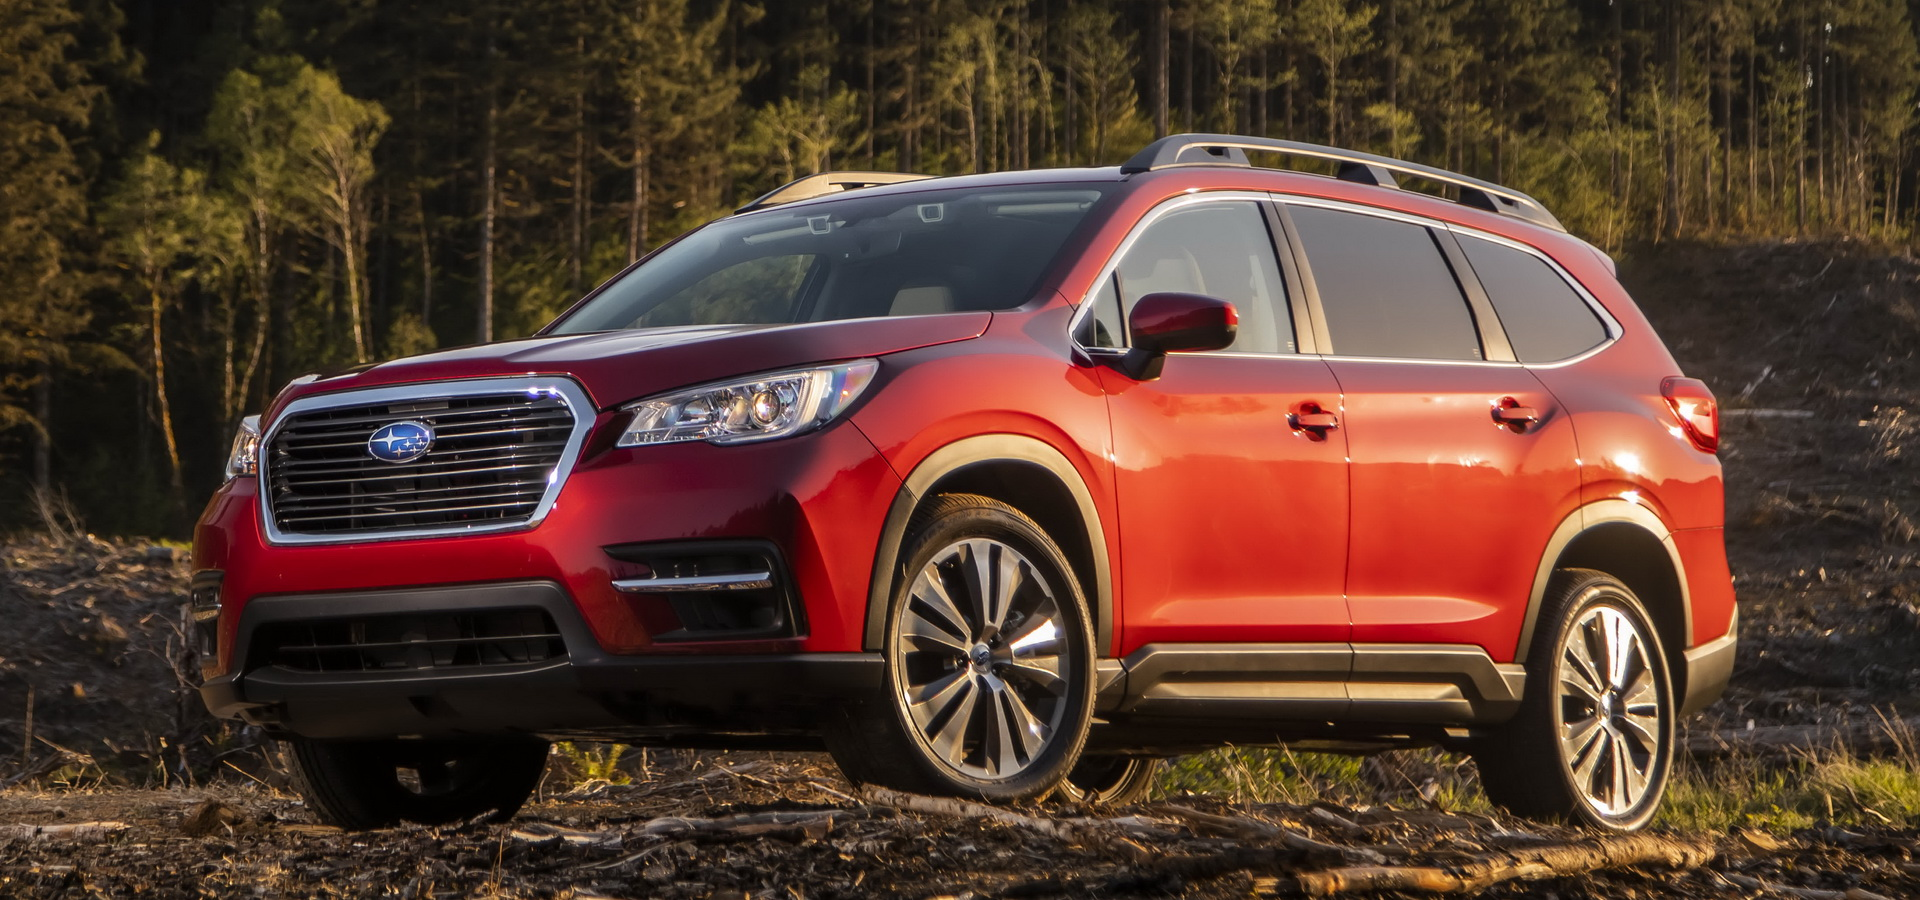 A Loaded Subaru Ascent Or A Base Luxury Compact SUV: What